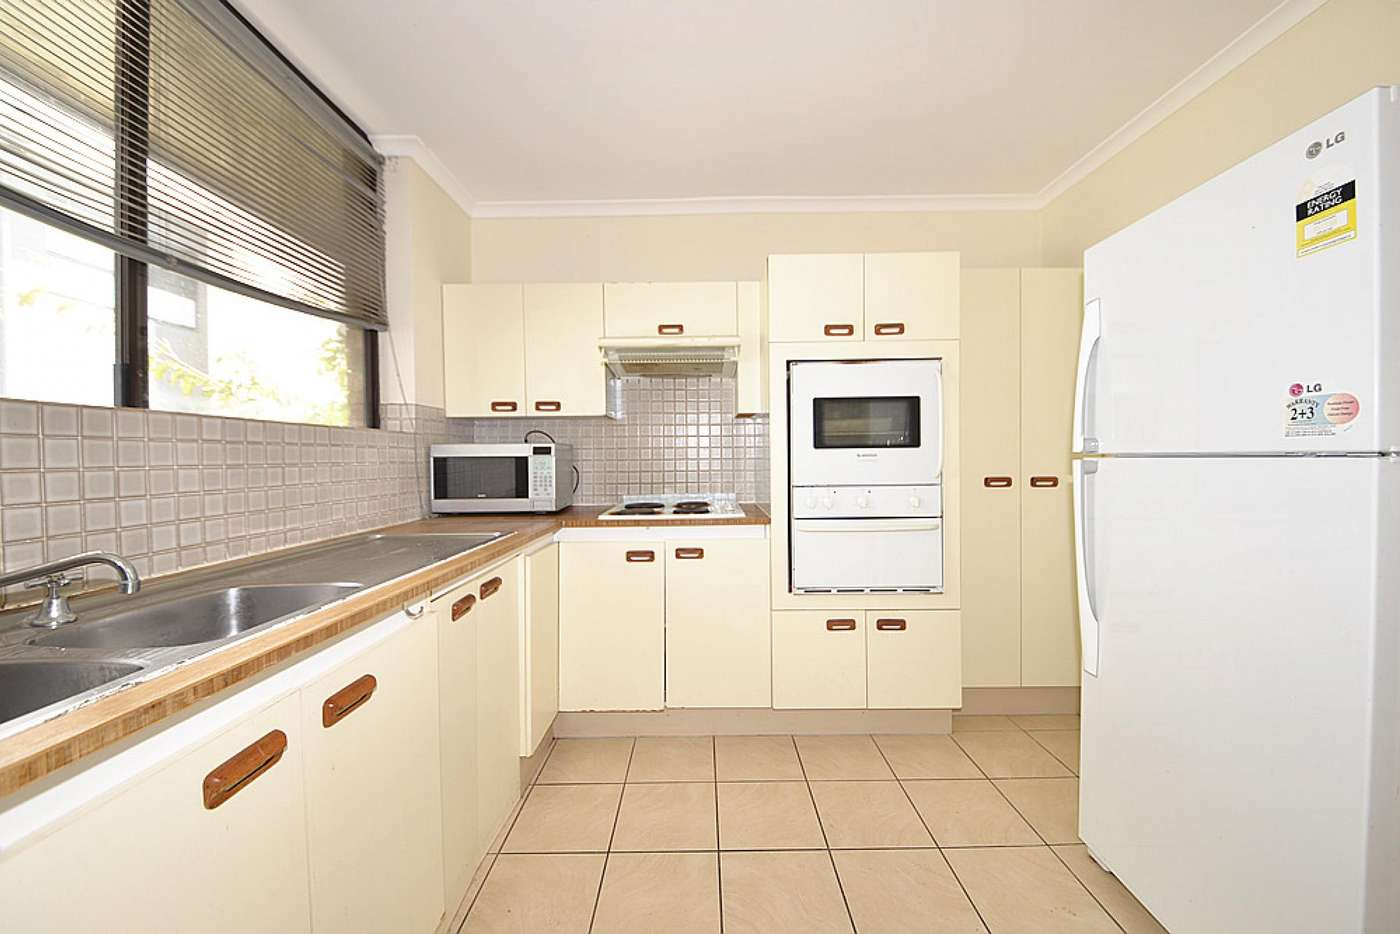 Sixth view of Homely unit listing, 4/114 Carmody Rd, St Lucia QLD 4067